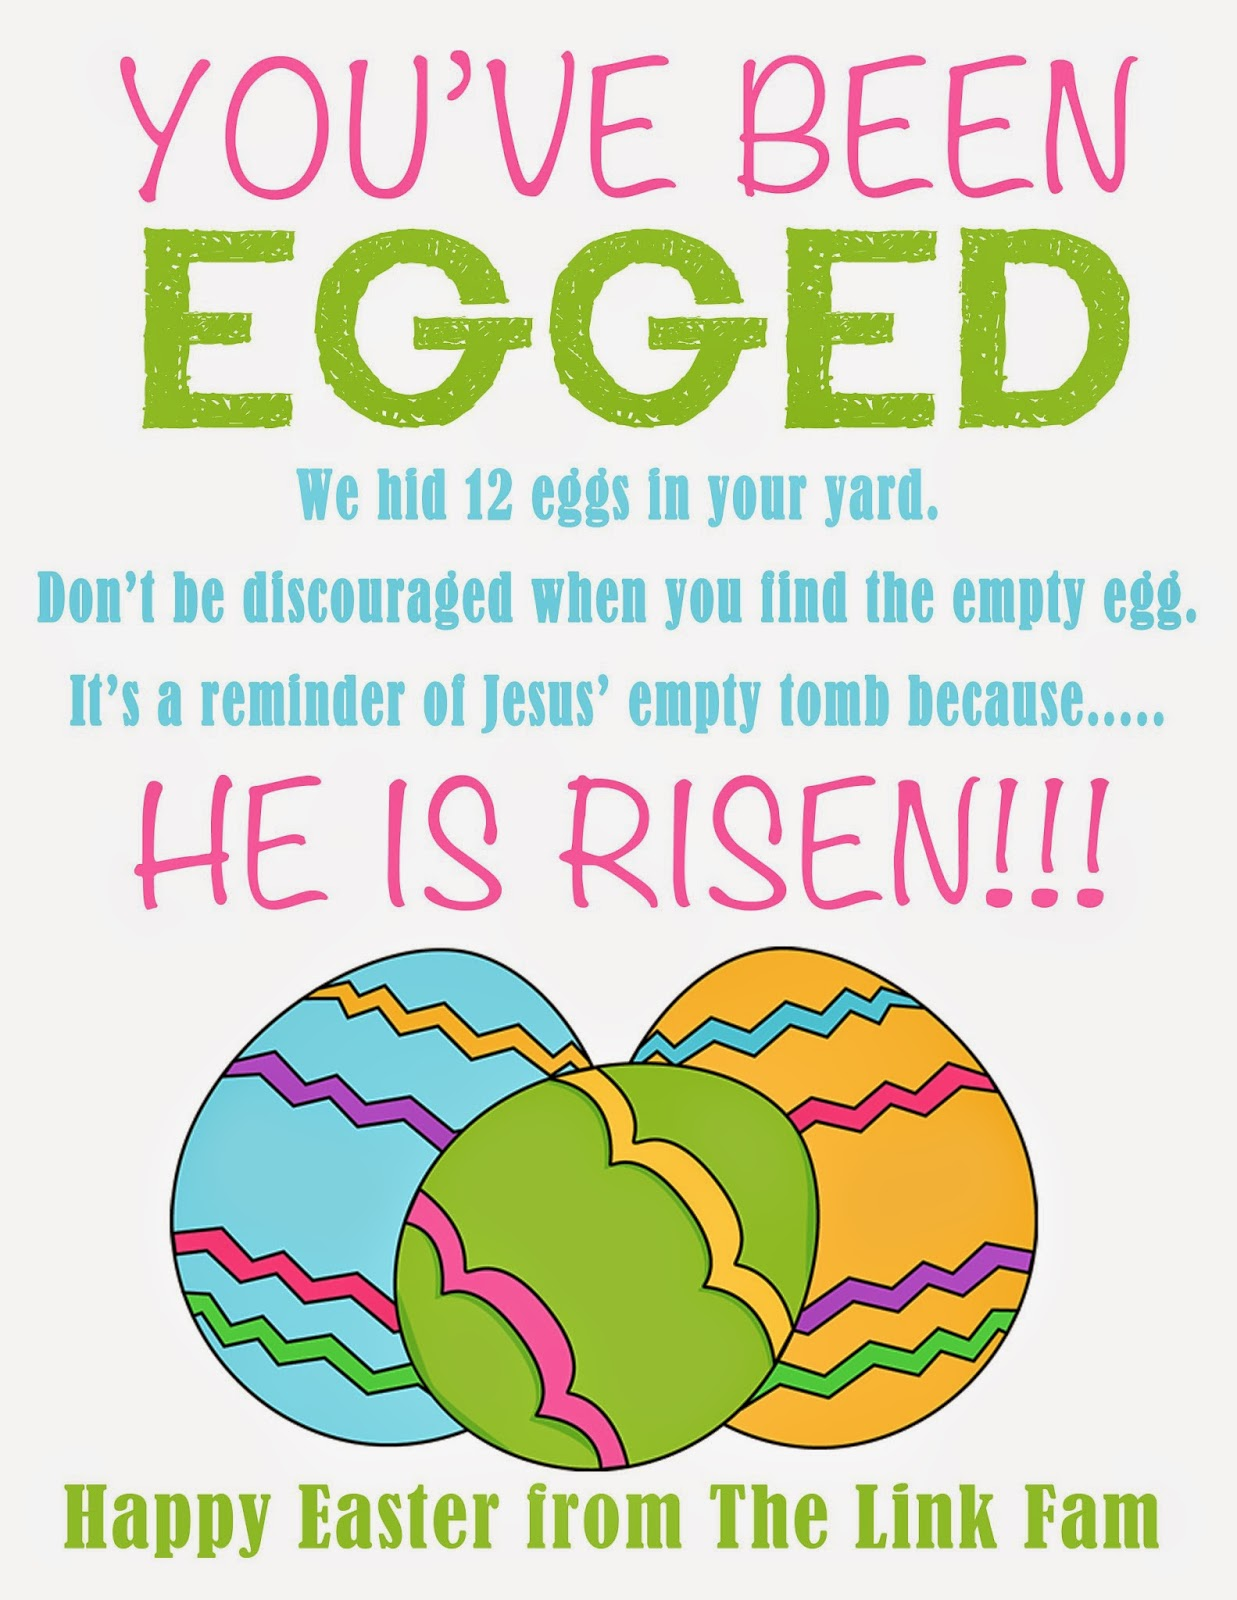 Tactueux image with regard to you've been egged printable